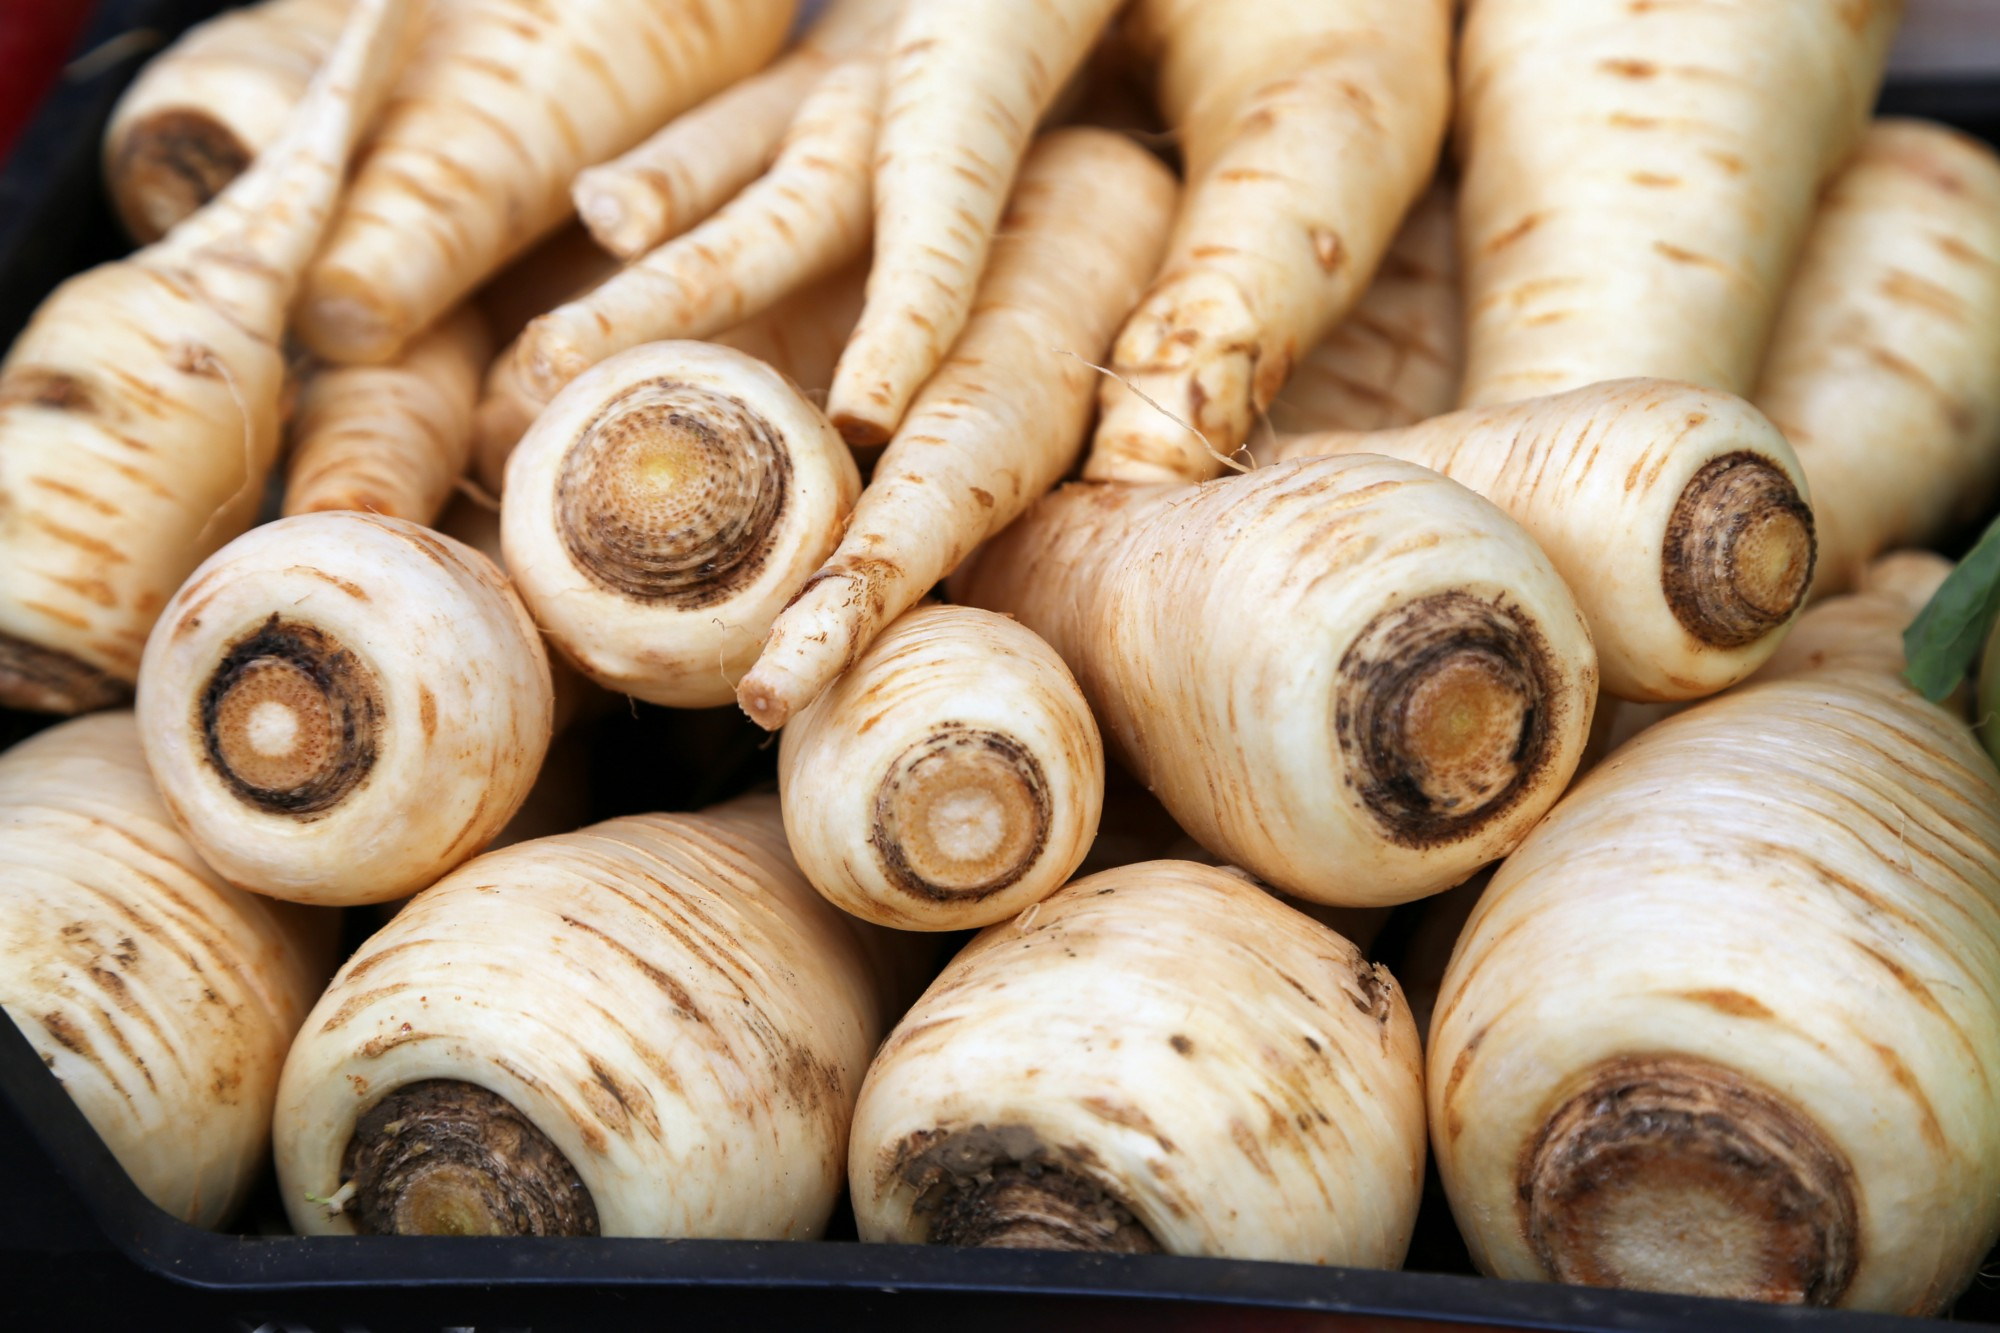 A pile of parsnips.